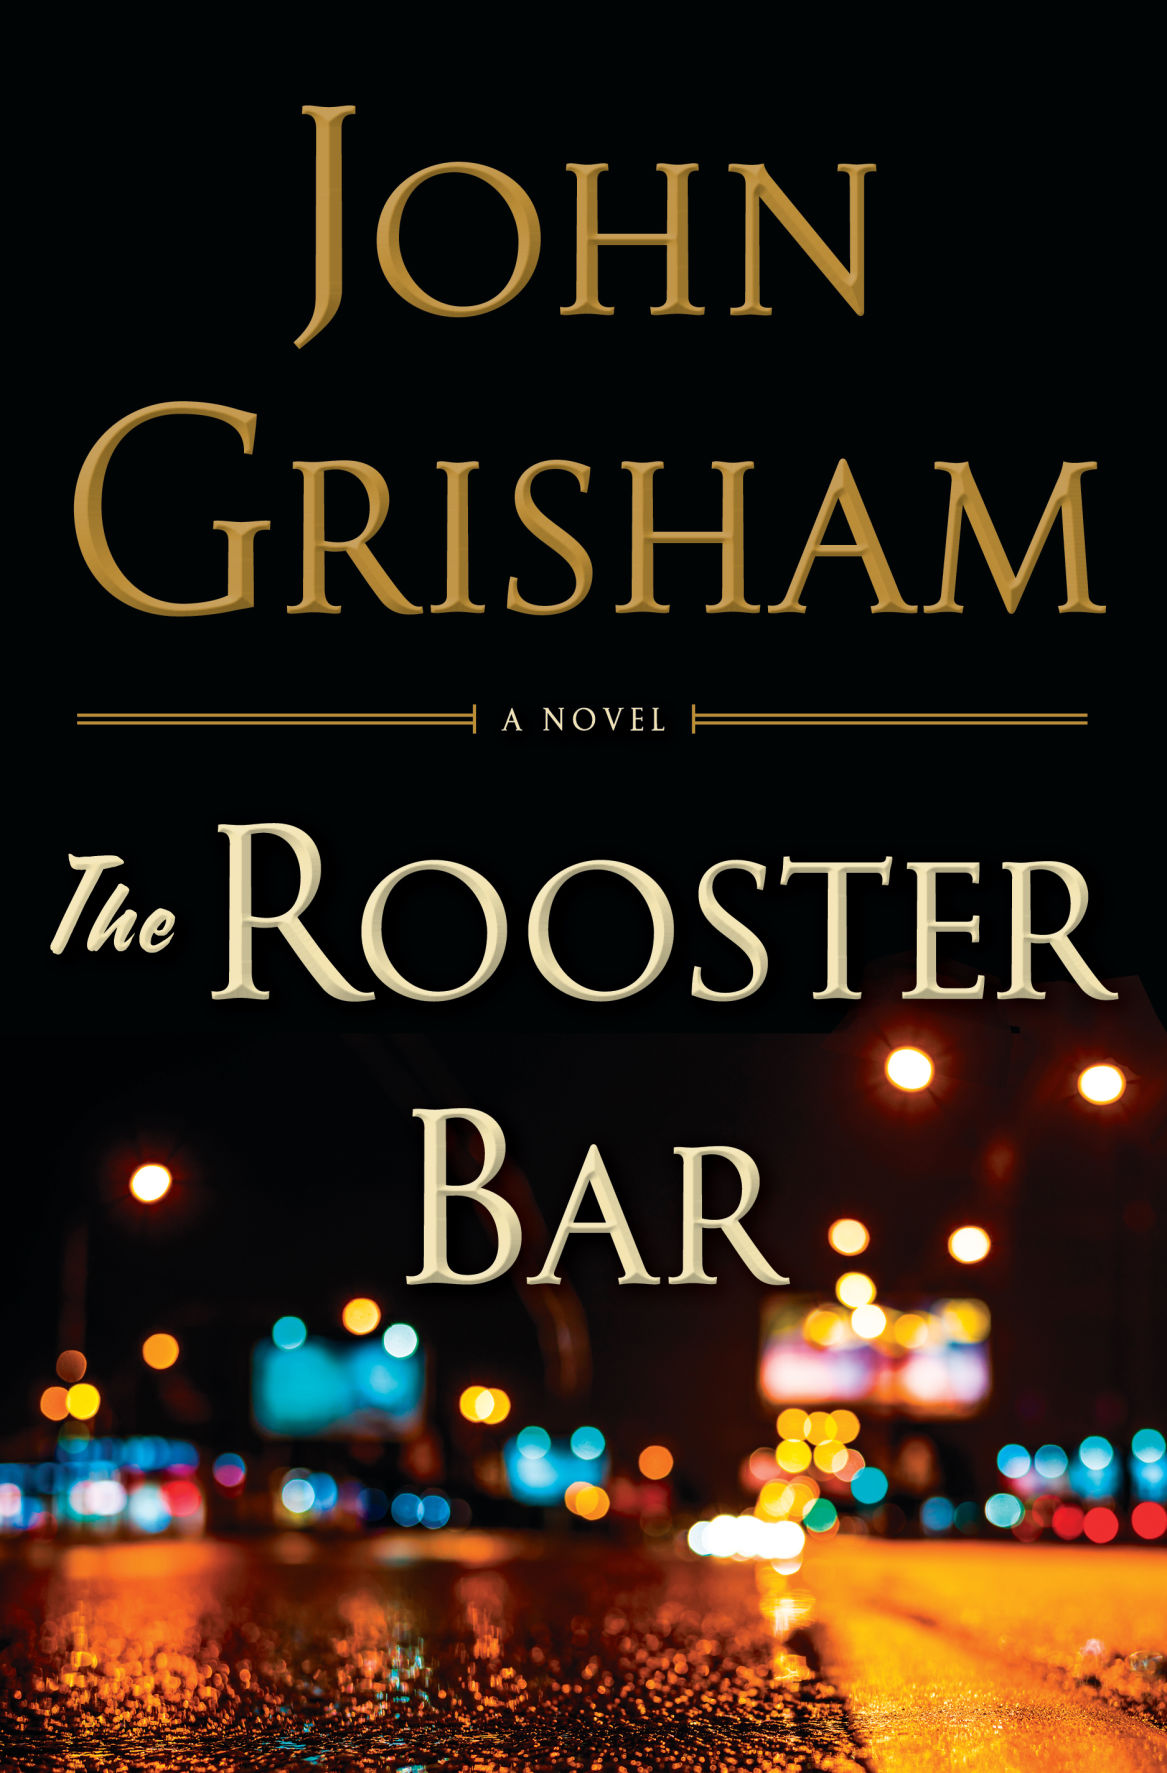 The Rooster Bar by John Grisham, AP photo